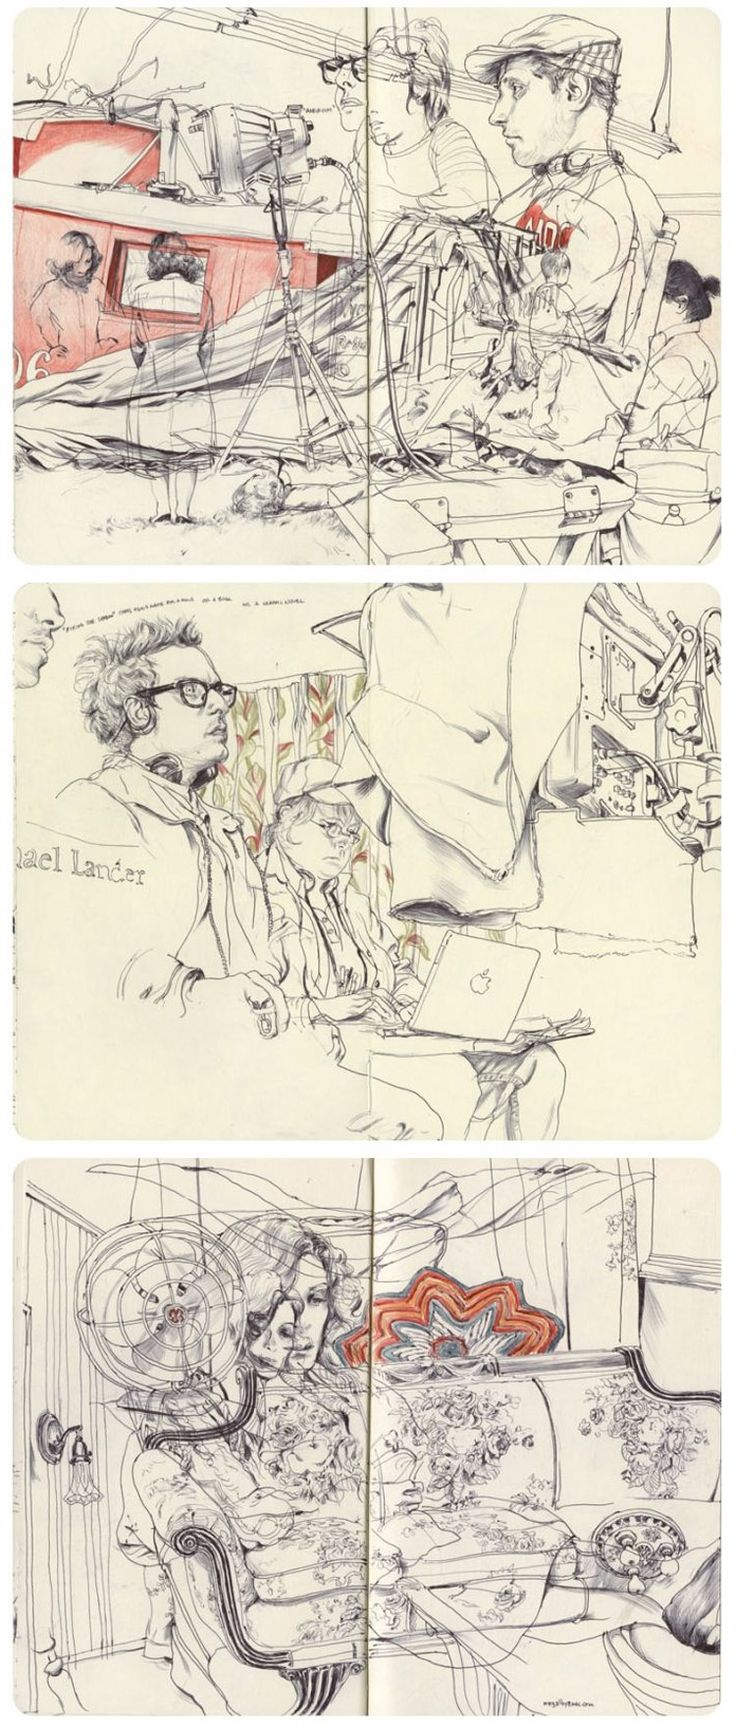 James Jean | Mole B #Moleskine #sketch #art #journal http://www.jamesjean.com/